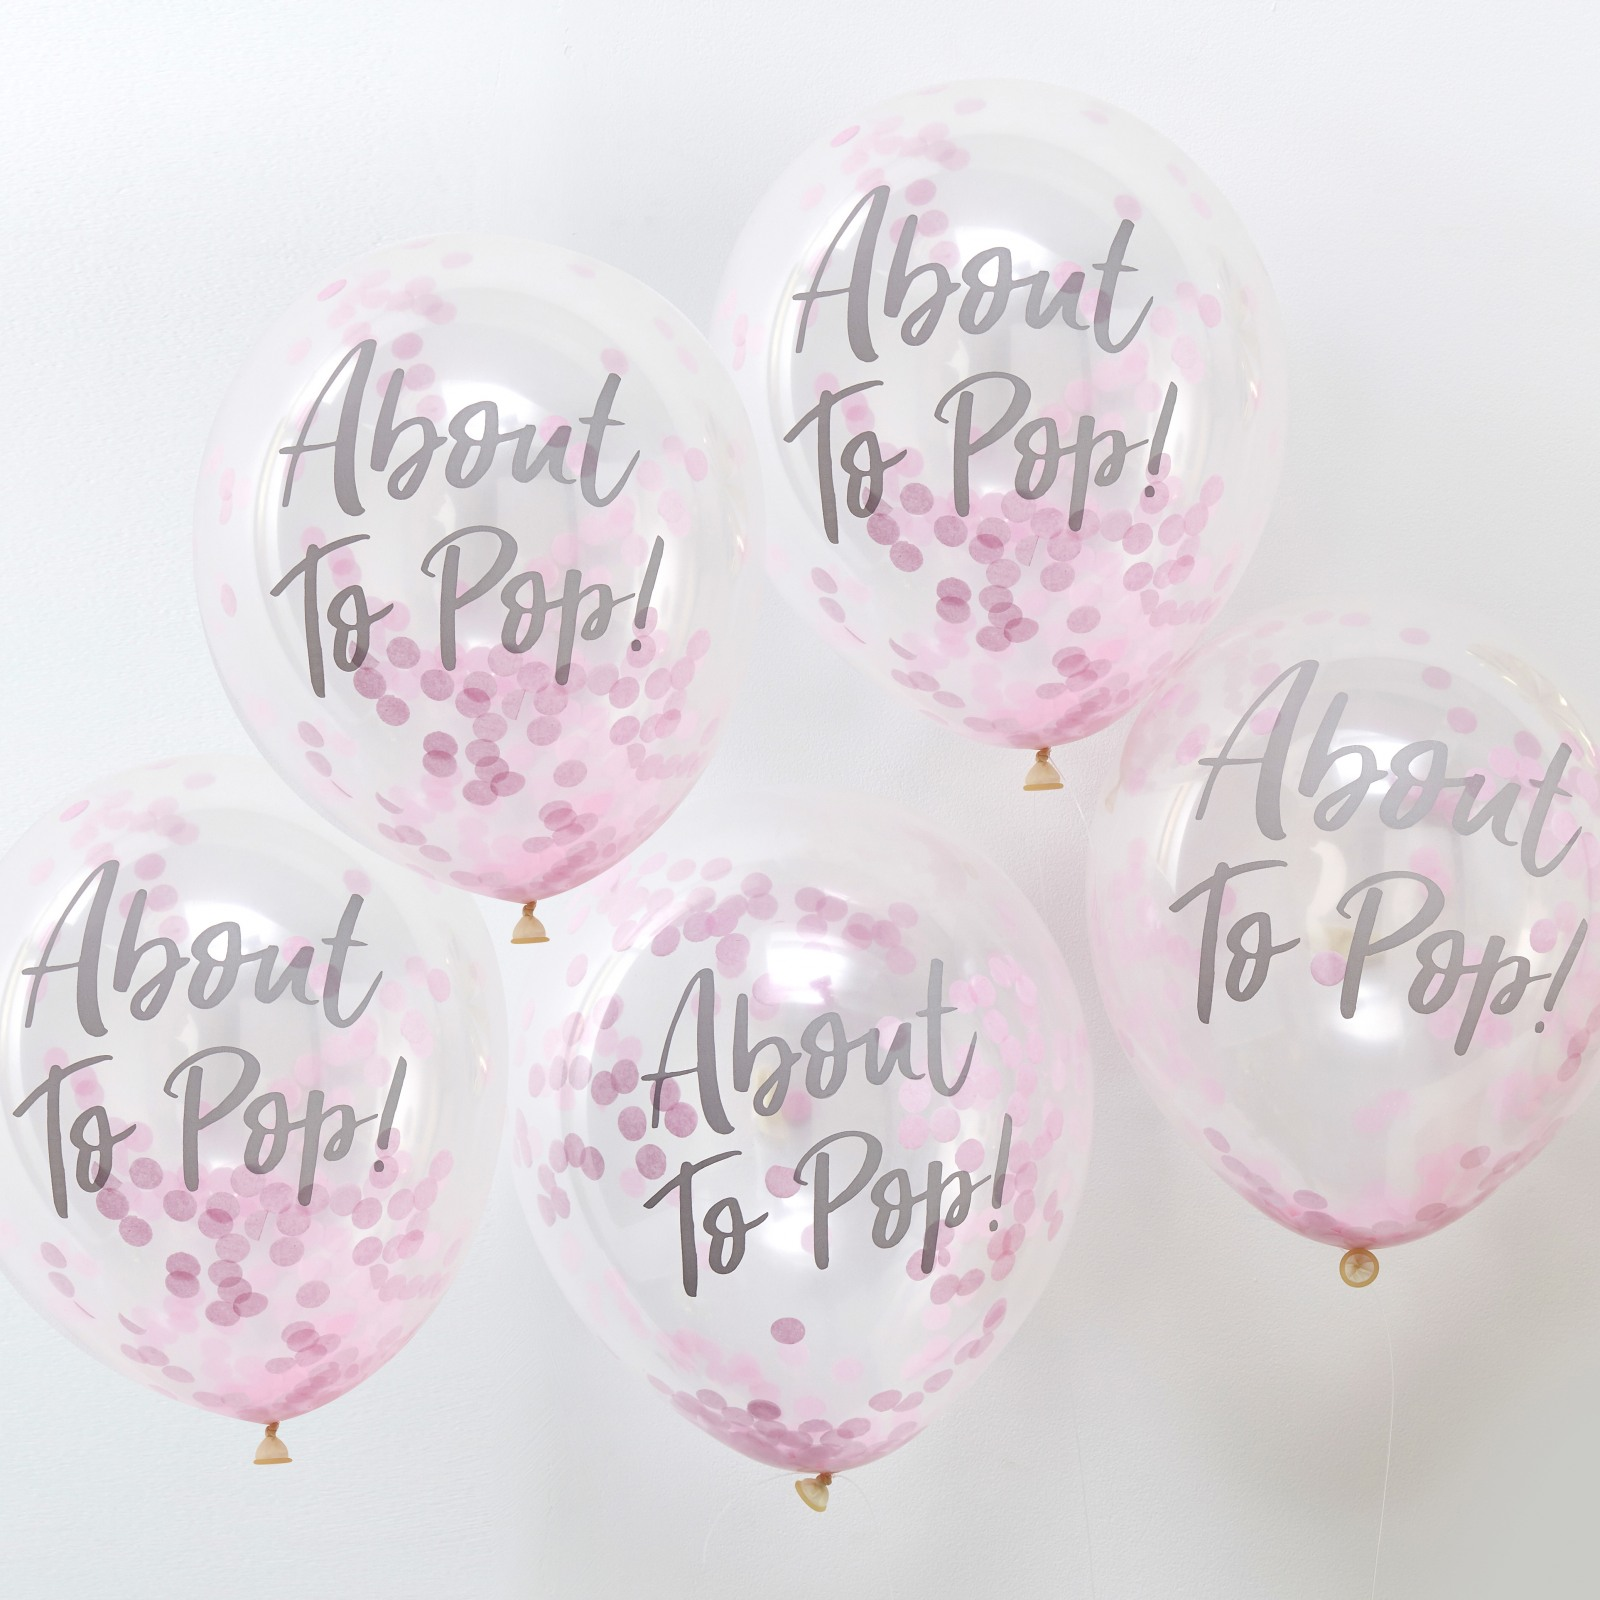 About To Pop Confetti Balloons 10474